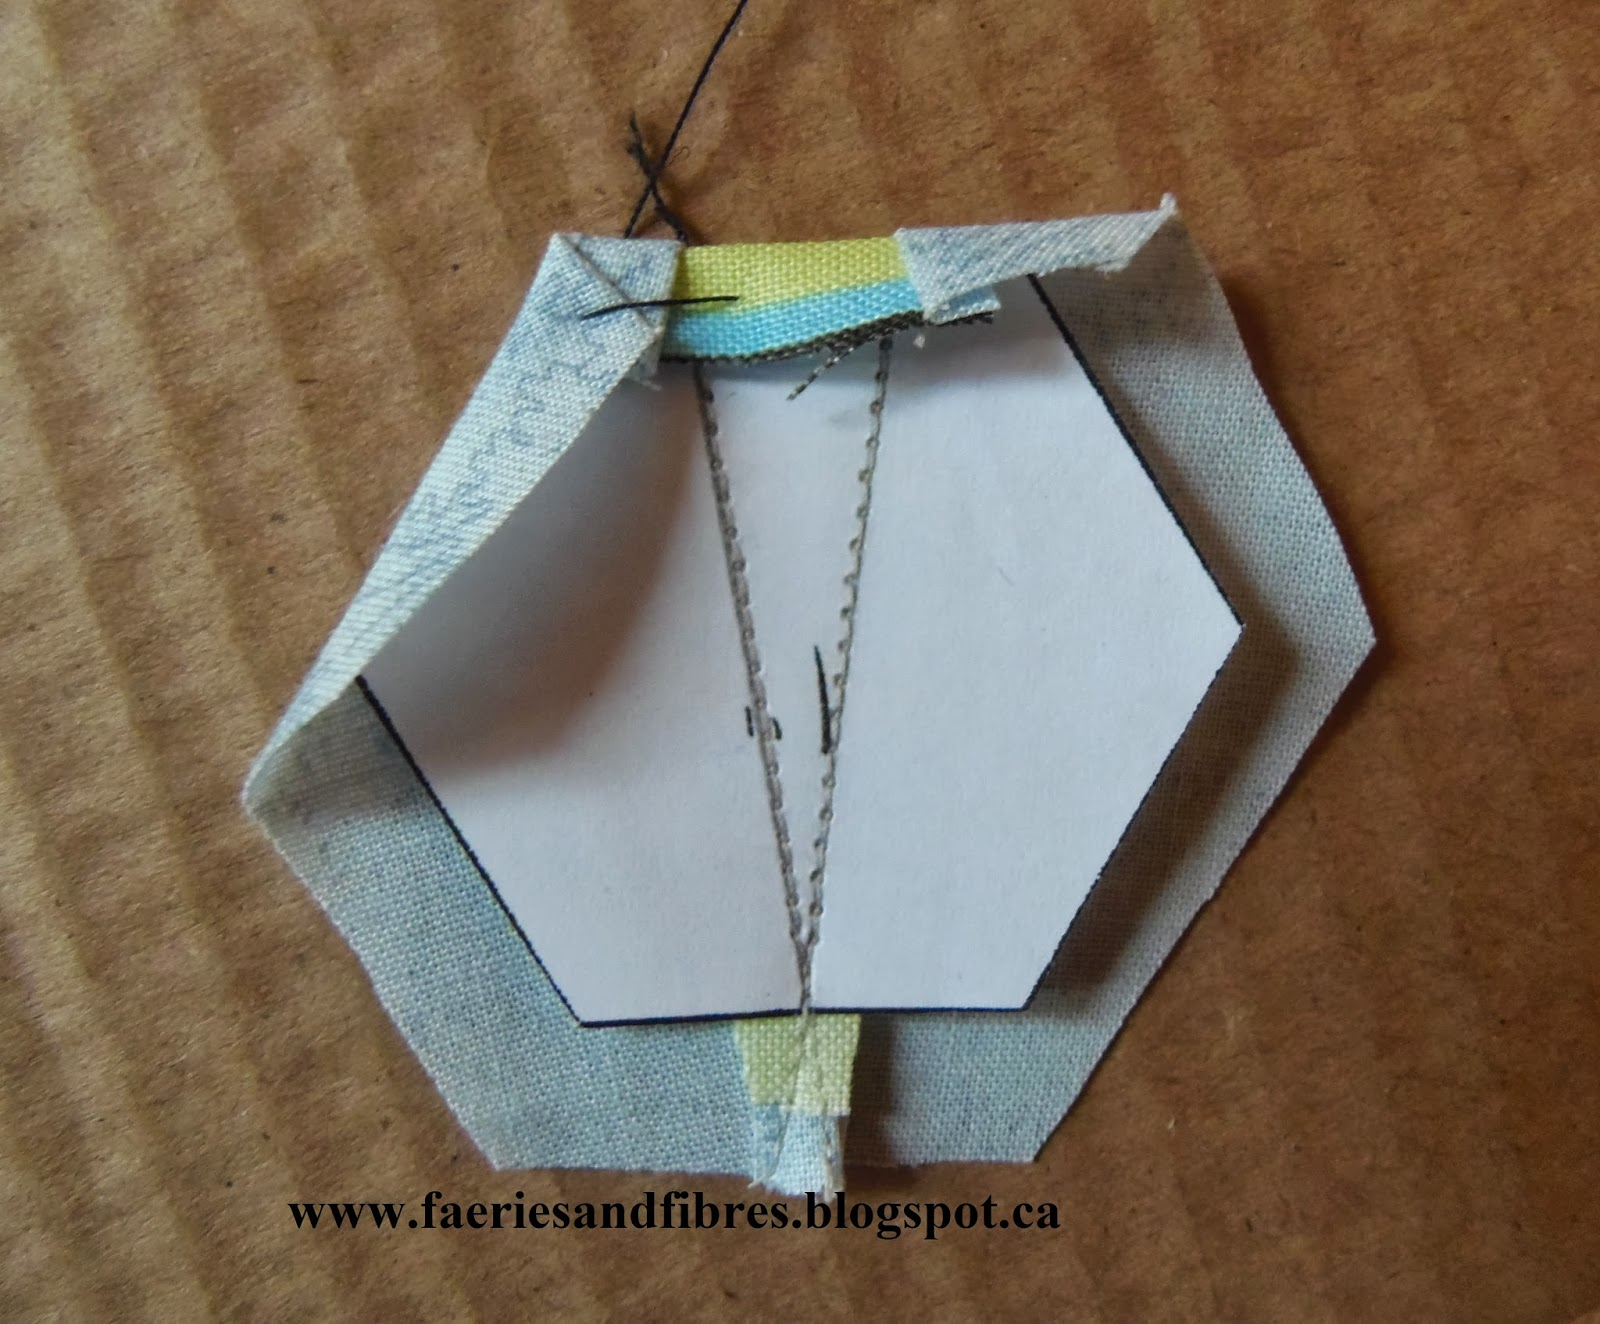 Faeries and fibres tutorial making a hexagon star my way part 2